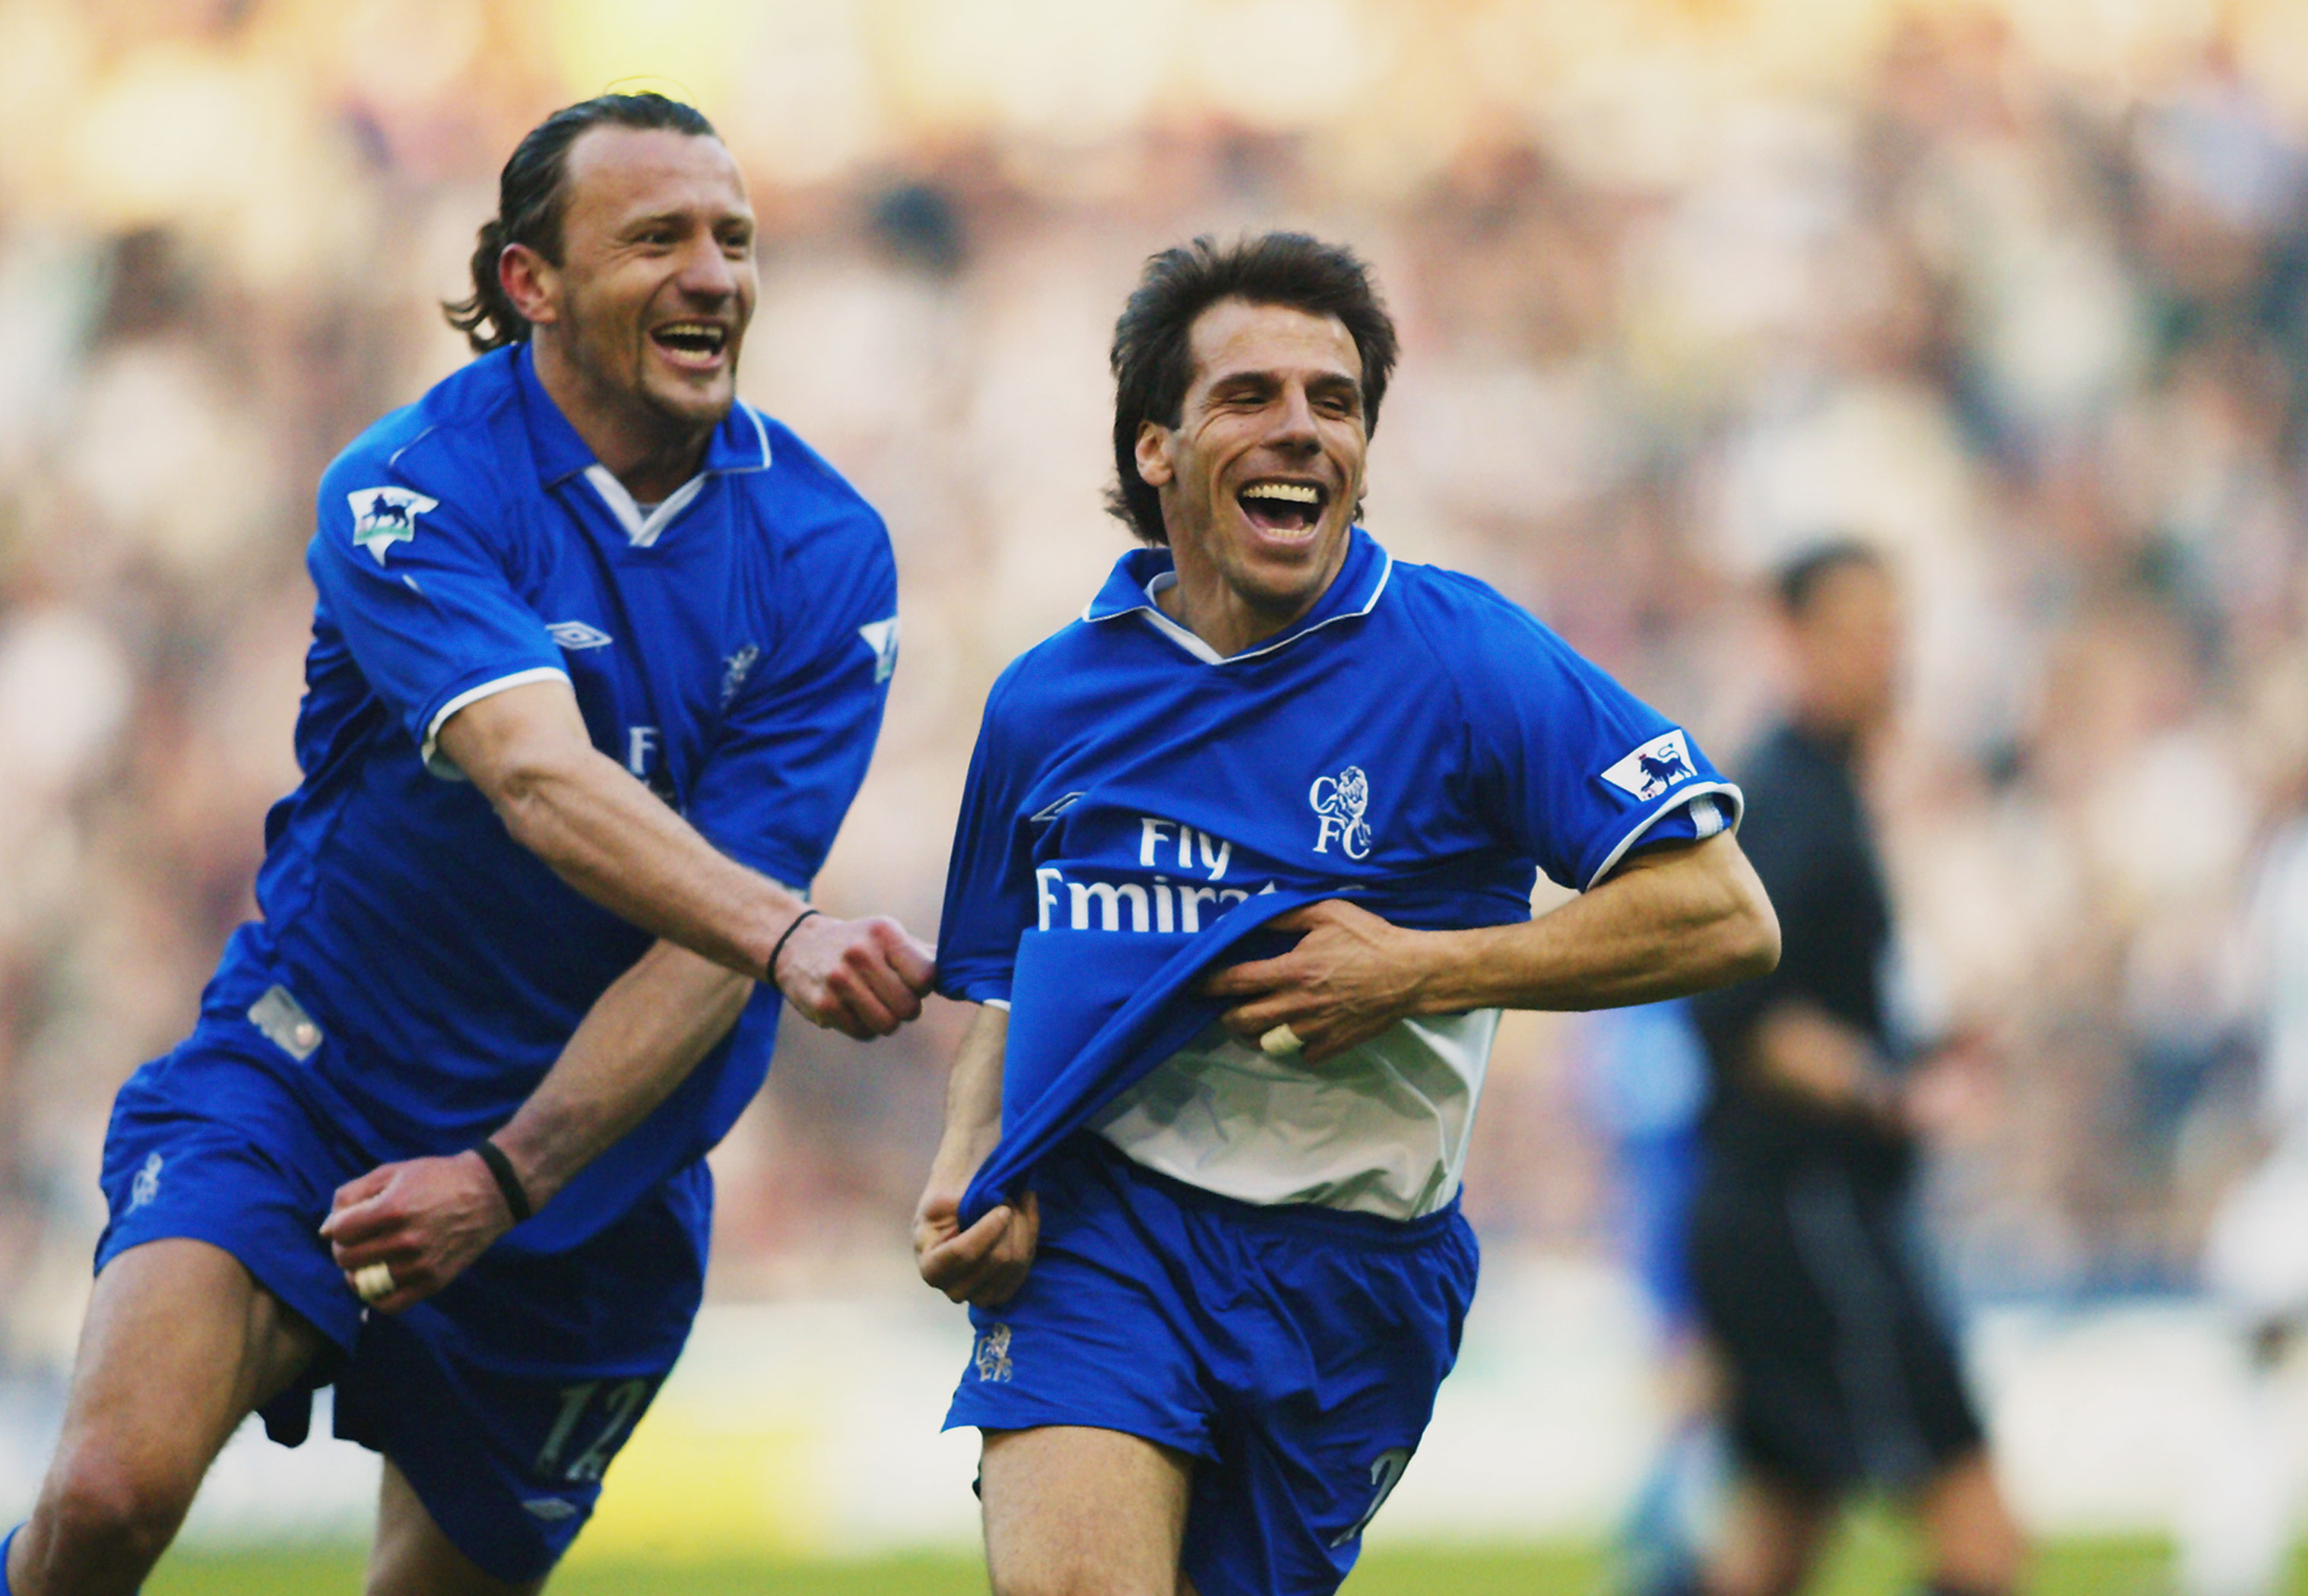 WEST BROMWICH - MARCH 16:  Gianfranco Zola of Chelsea celebrates scoring the second goal with team-mate Mario Stanic during the FA Barclaycard Premiership match between West Bromwich Albion and Chelsea held on March 16, 2003 at The Hawthorns, in West Brom